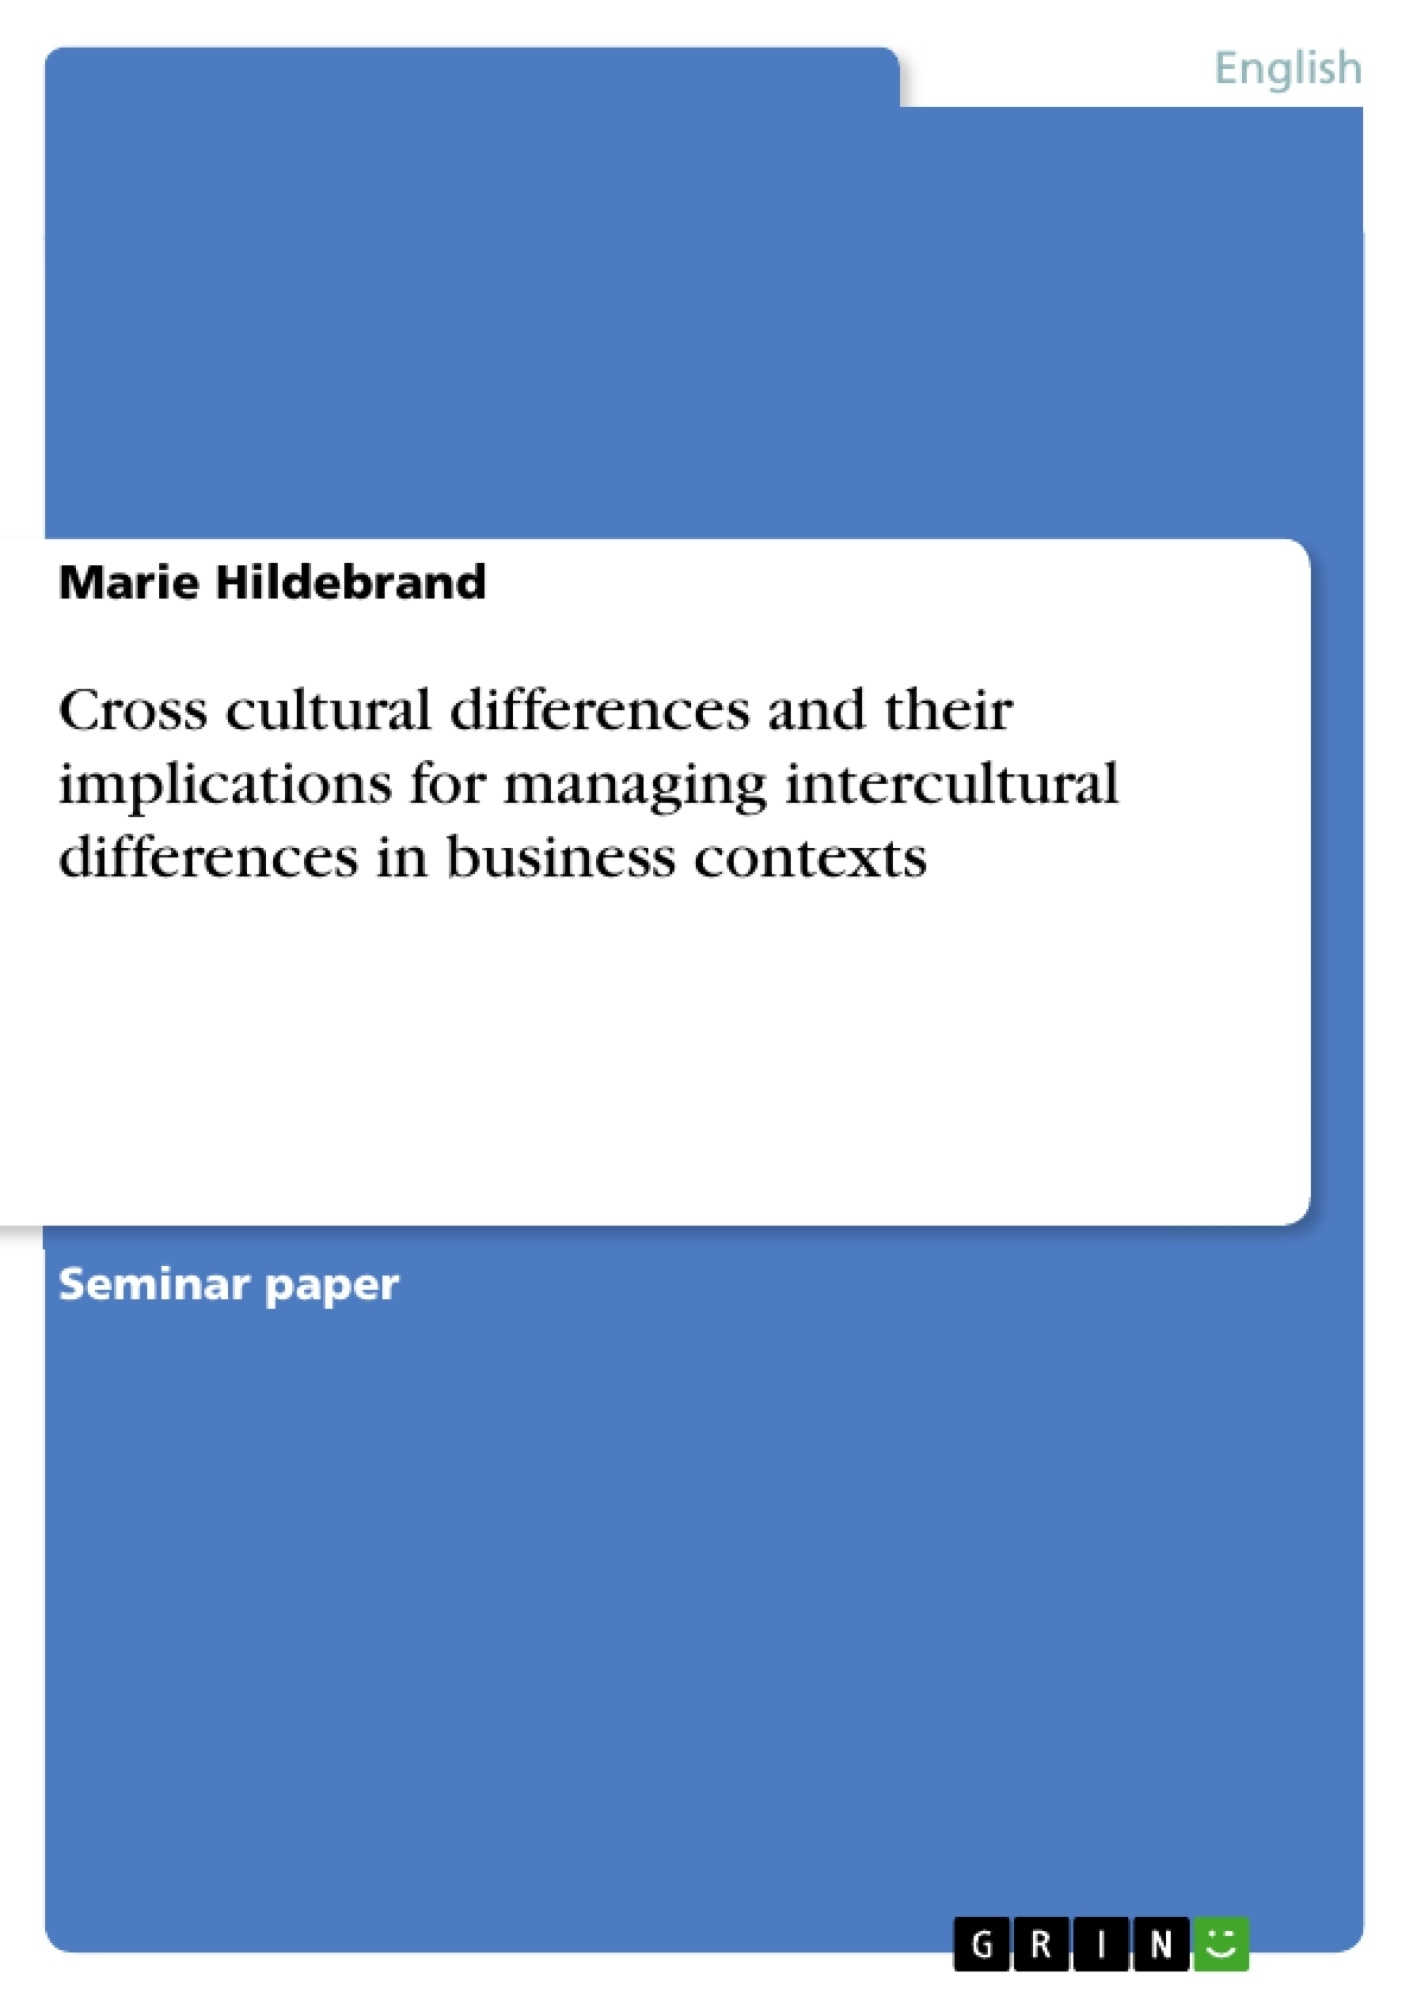 Title: Cross cultural differences and their implications for managing intercultural differences in business contexts